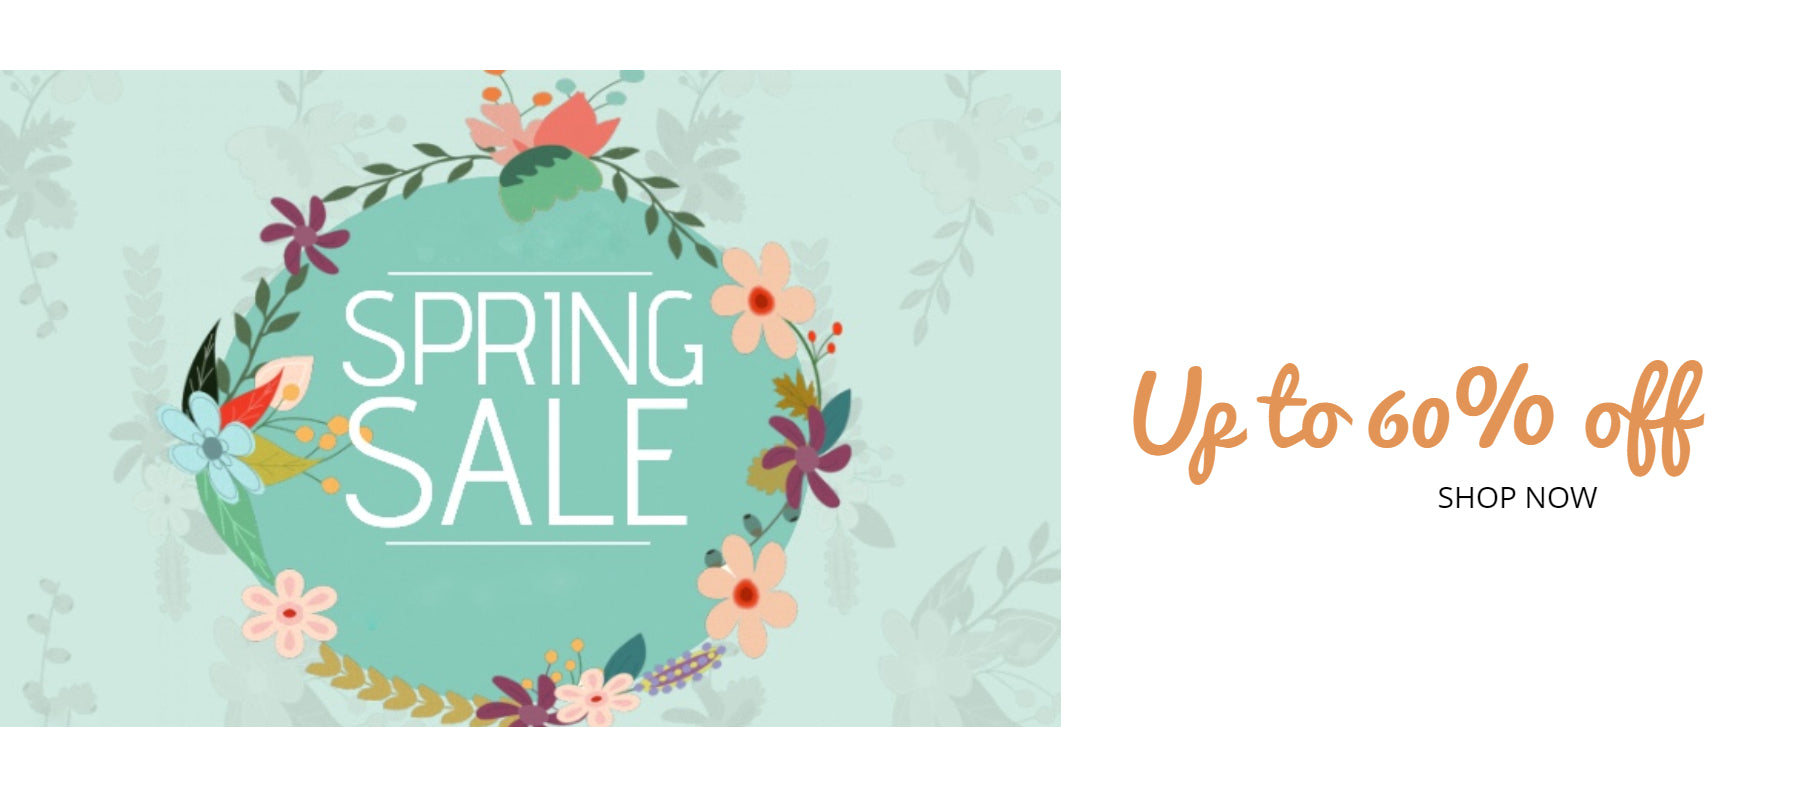 SPRING SALE - Rock Your Baby, Hubble & Duke, Children of the Tribe, Kapow Kids, Cheeky Chickadee, Marlo Kids, Tutu du Monde